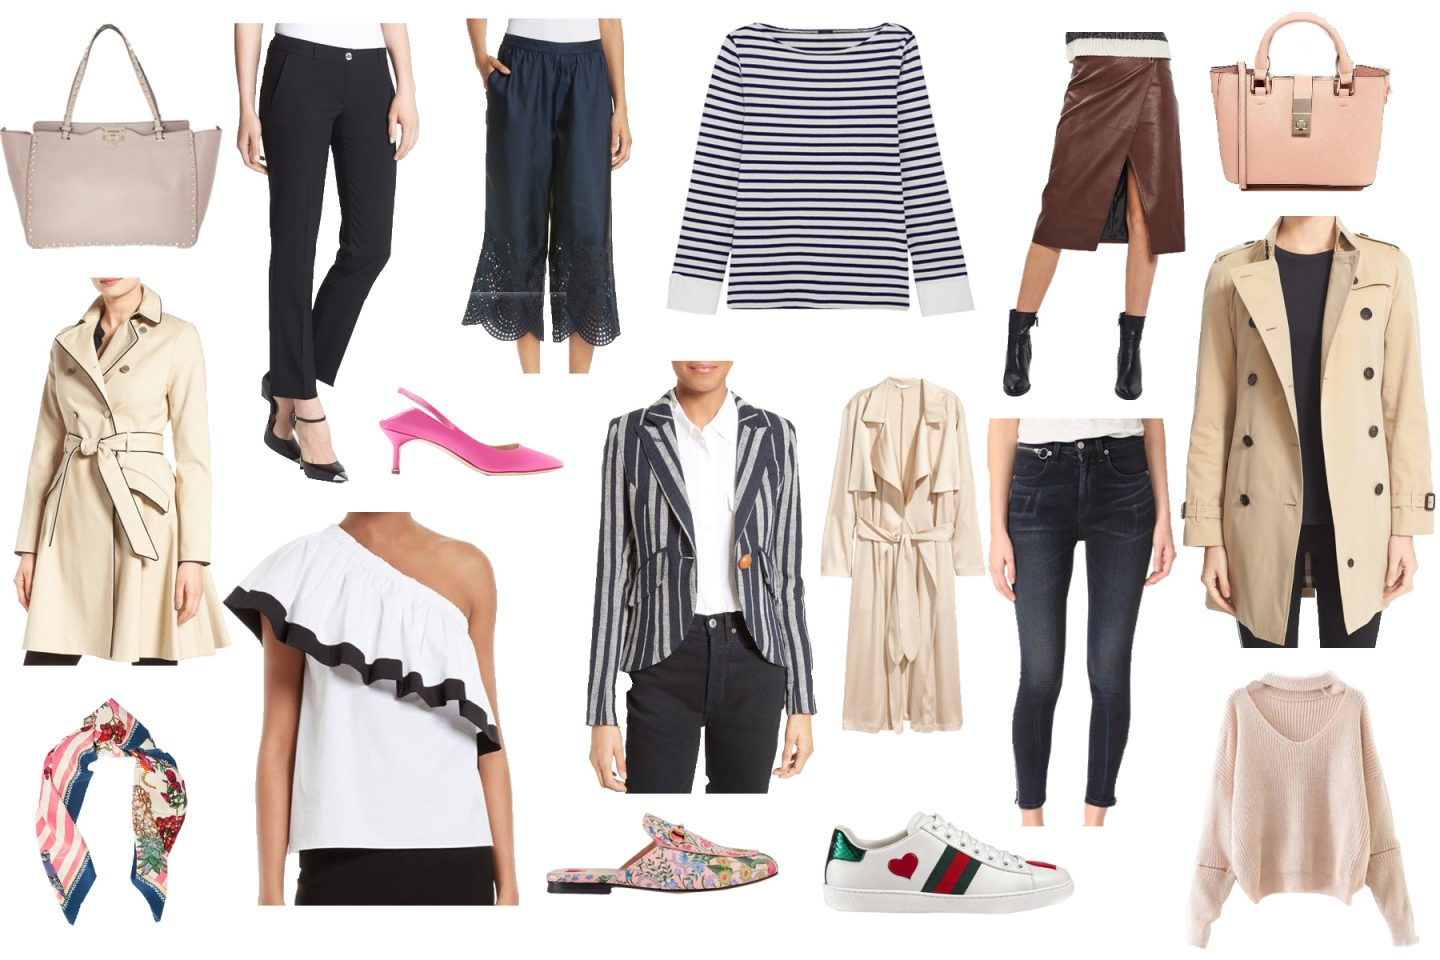 Spring Capsule Wardrobe With 20 Essential Pieces